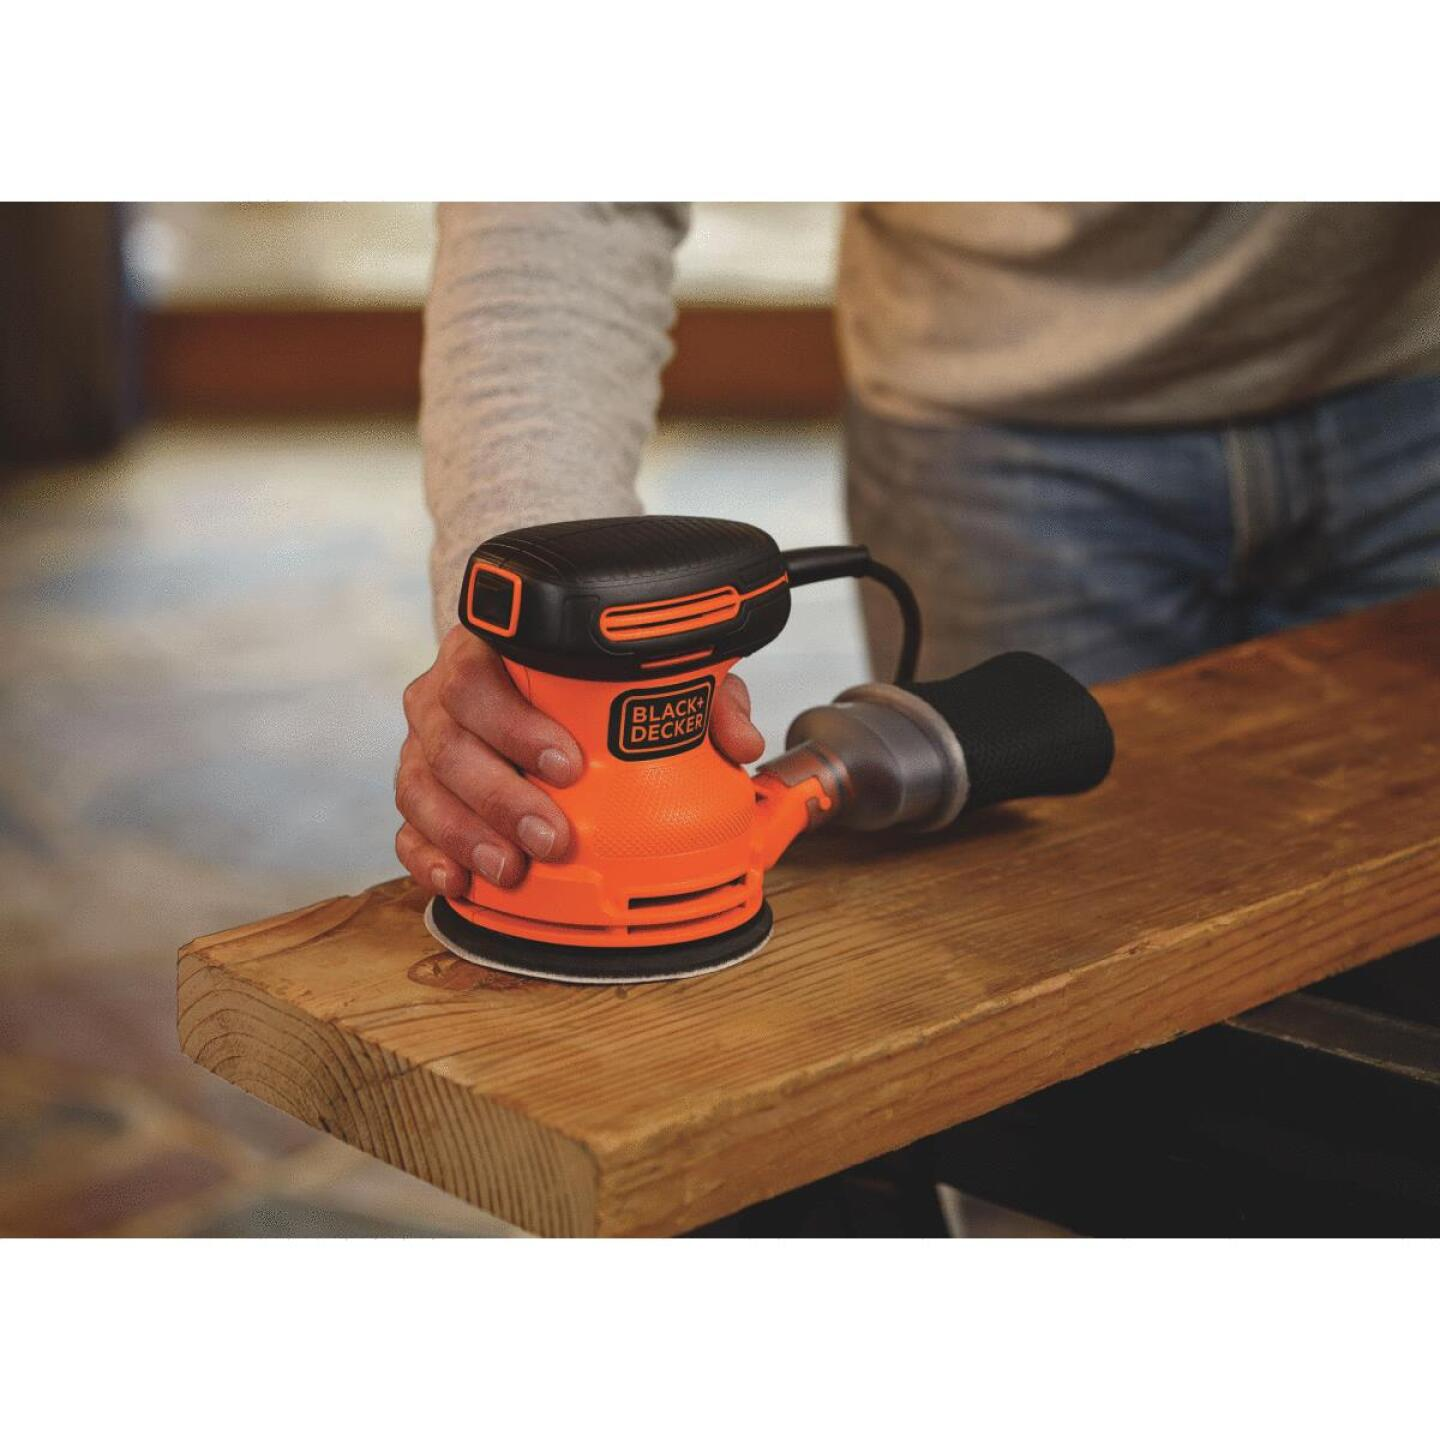 Black & Decker 5 In. 2.0A Finish Sander Image 6